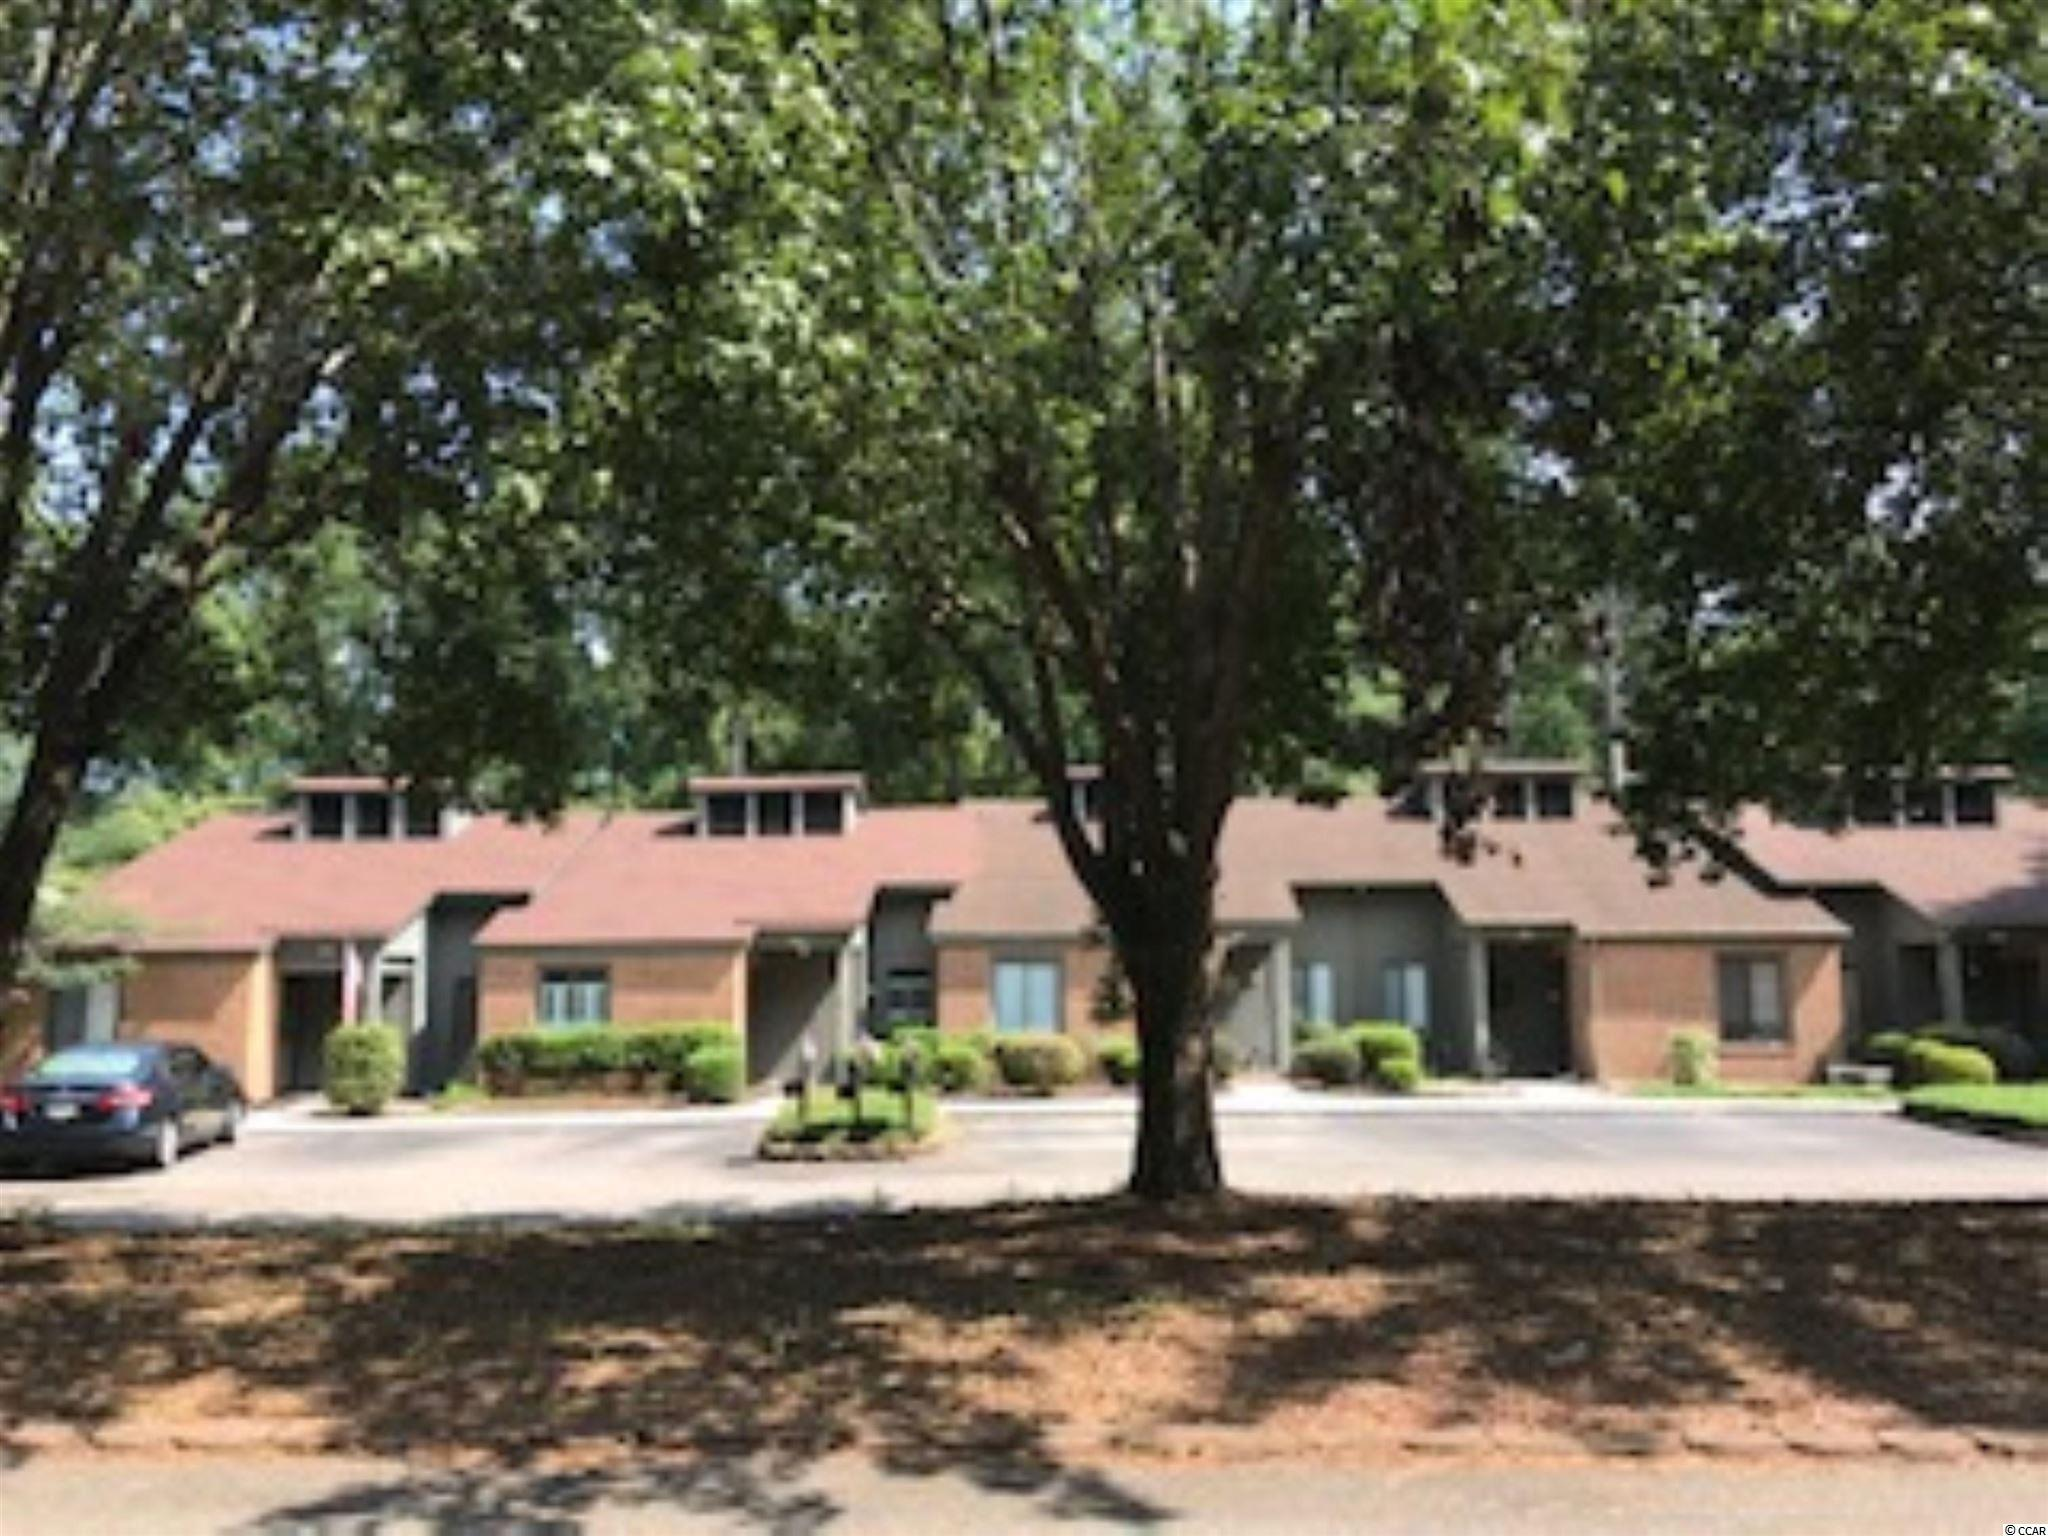 """Cricket Ct 2BR/1BA Townhome in Myrtle Trace.  55+ Community.  This townhouse is being sold """"AS IS"""".  Ideal for a Single Person, good floor plan, Improvements in progress.  Rear of property has views of a community """"Lake"""".  There are covenants & restrictions, www.myrtletracesc.org.  Quiet Cul de Sac location.  2 Parking spaces in front of townhome.  Walk to clubhouse and pool.  Pet allowed.  Very active community.  A Community of senior neighbors."""